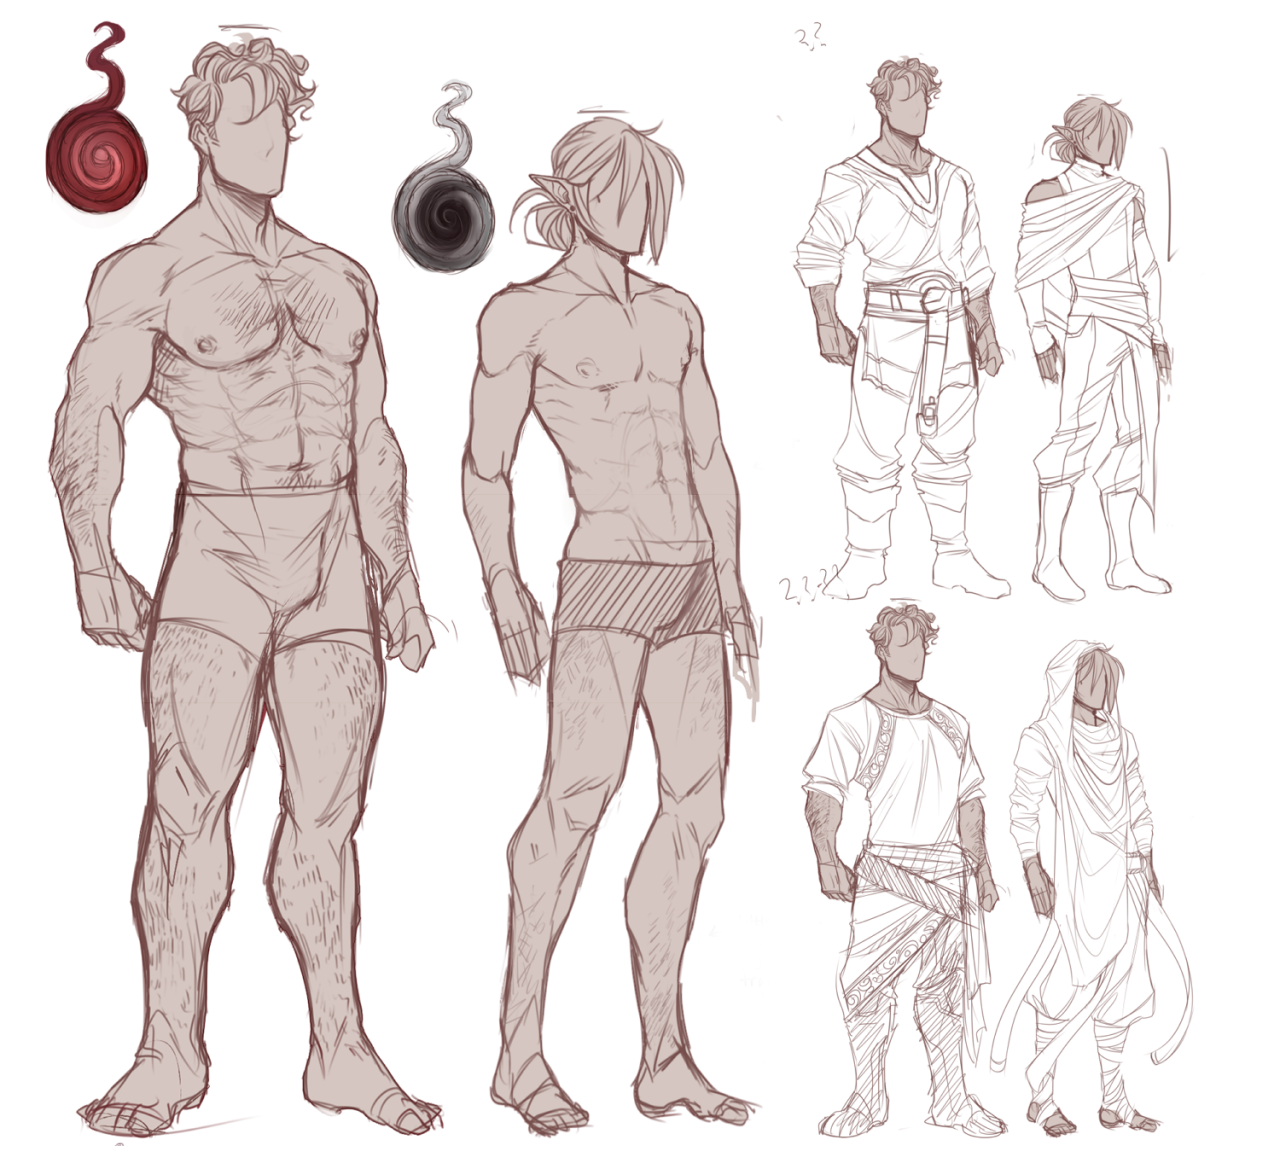 Canarywitch S Art Dump In 2020 Character Design Male Character Art Art Reference Poses